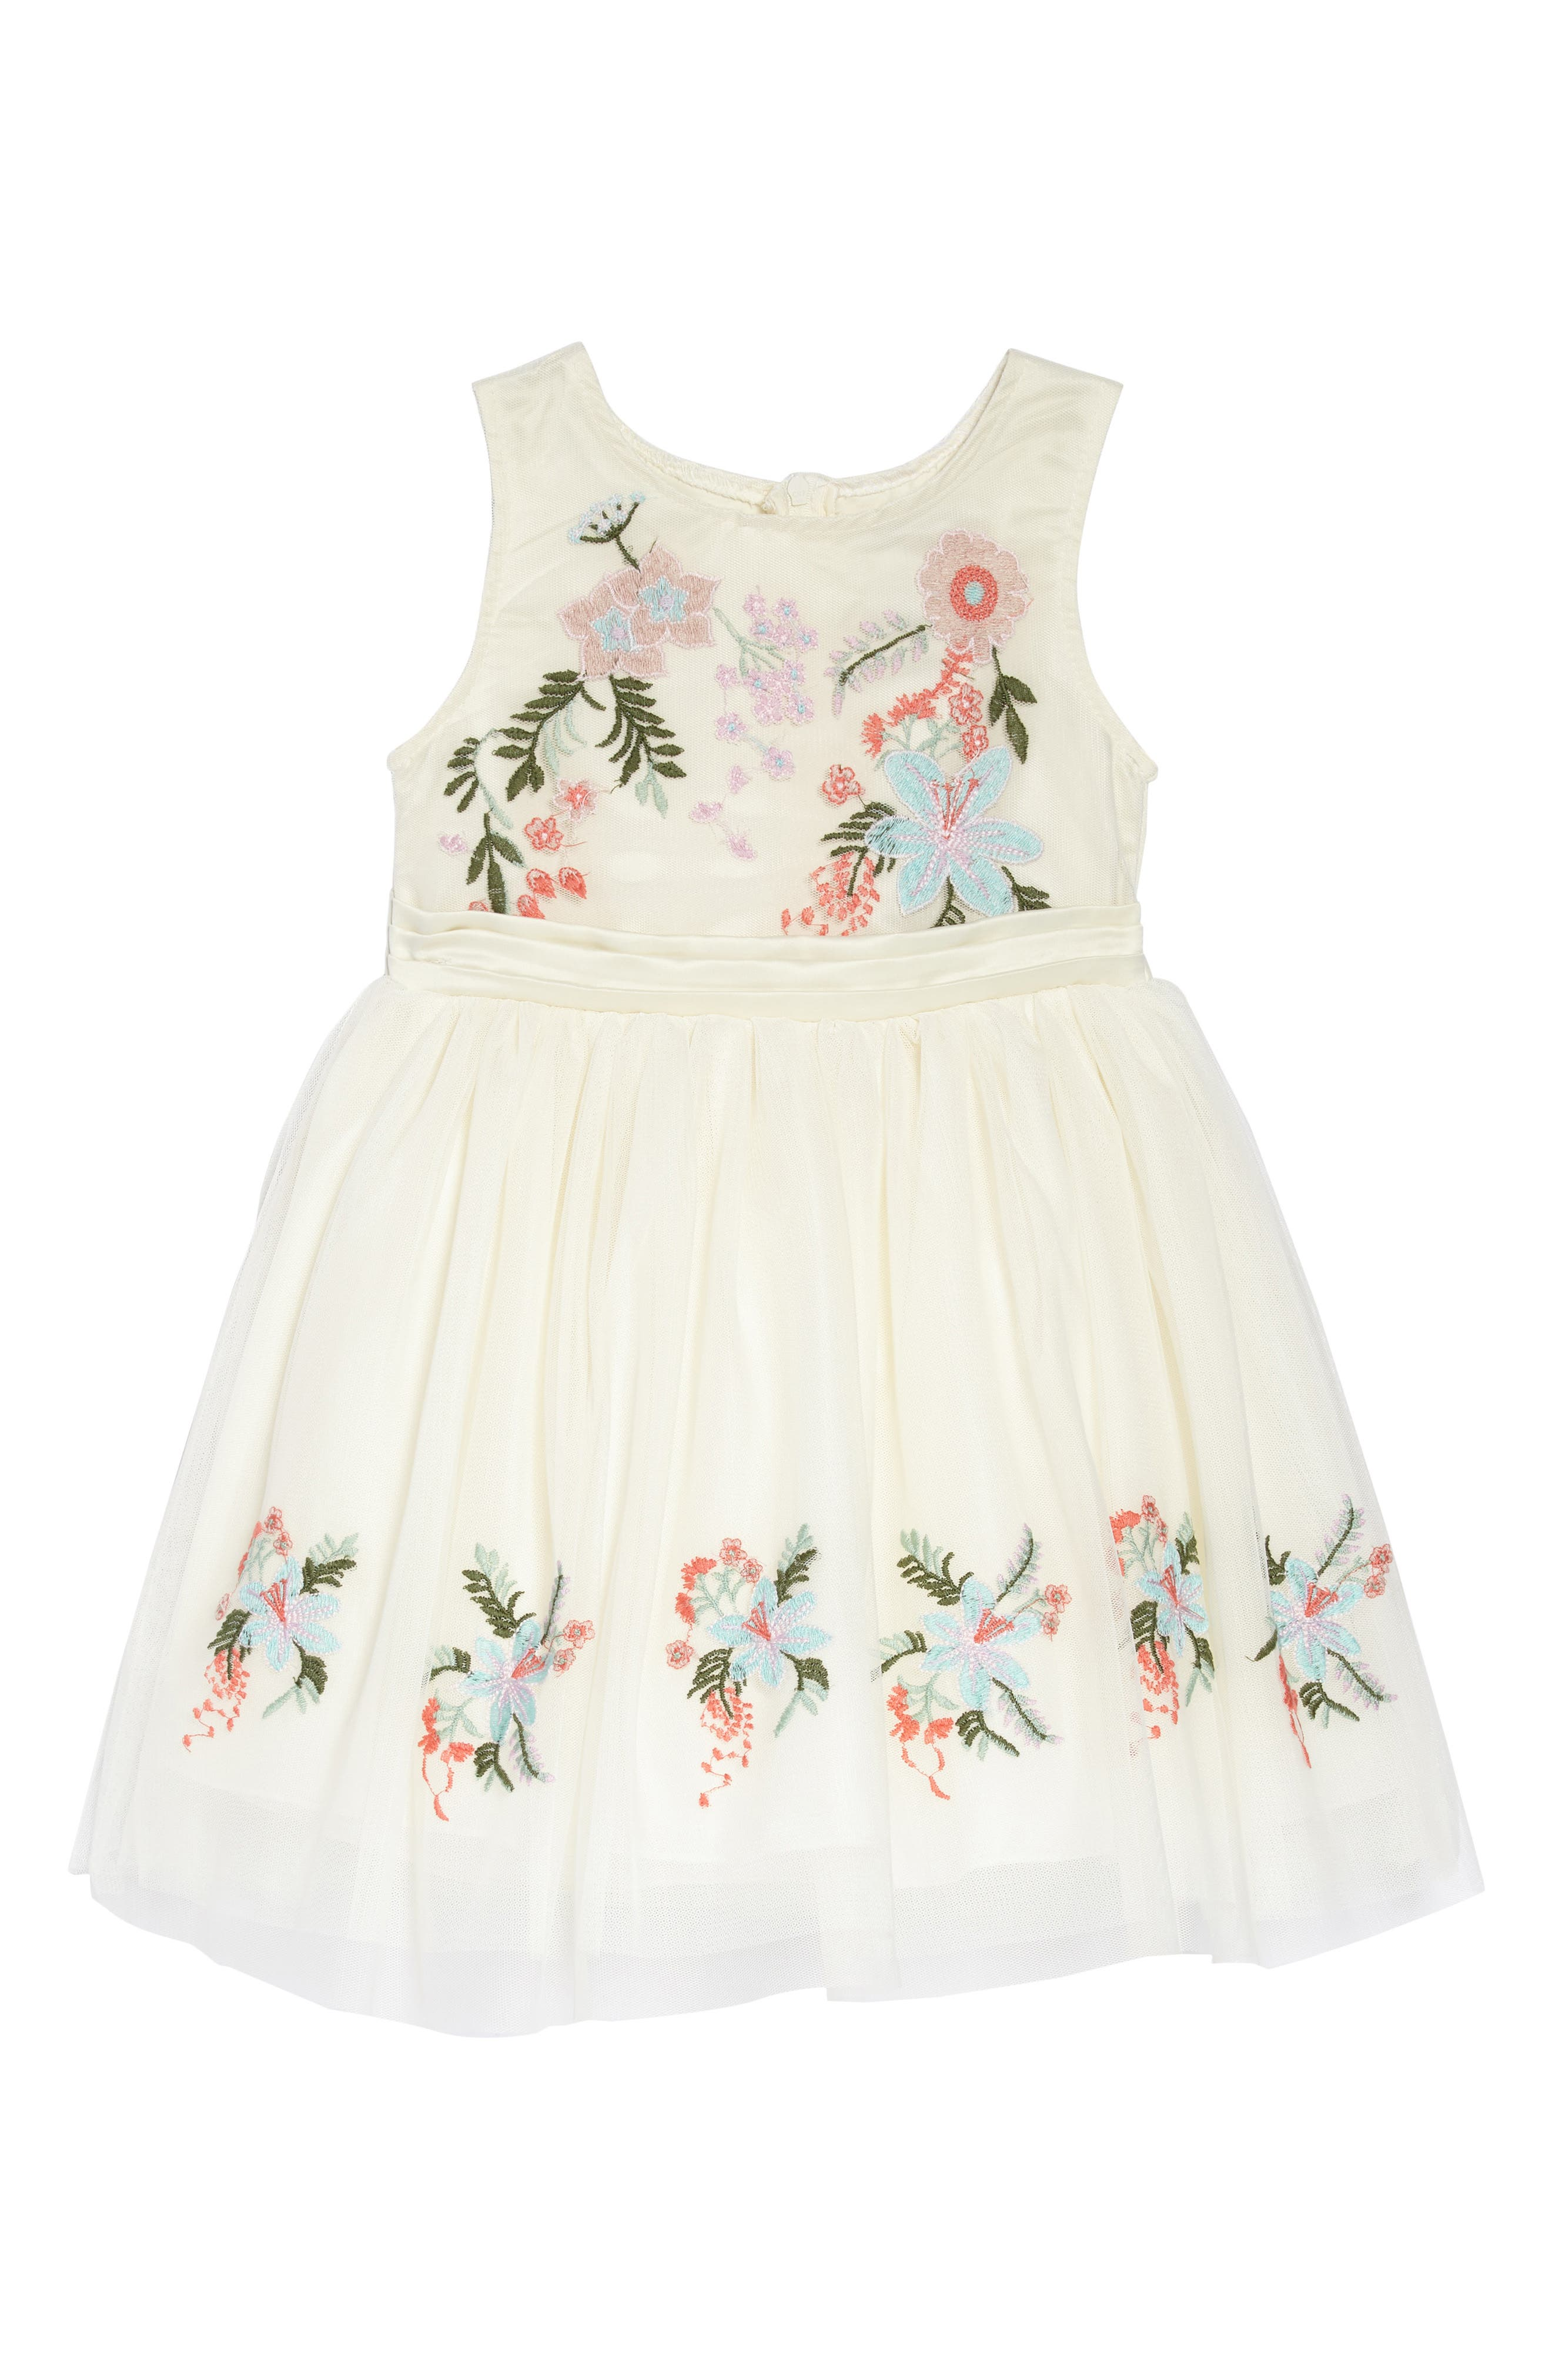 Flower Embroidered Party Dress,                         Main,                         color, 900